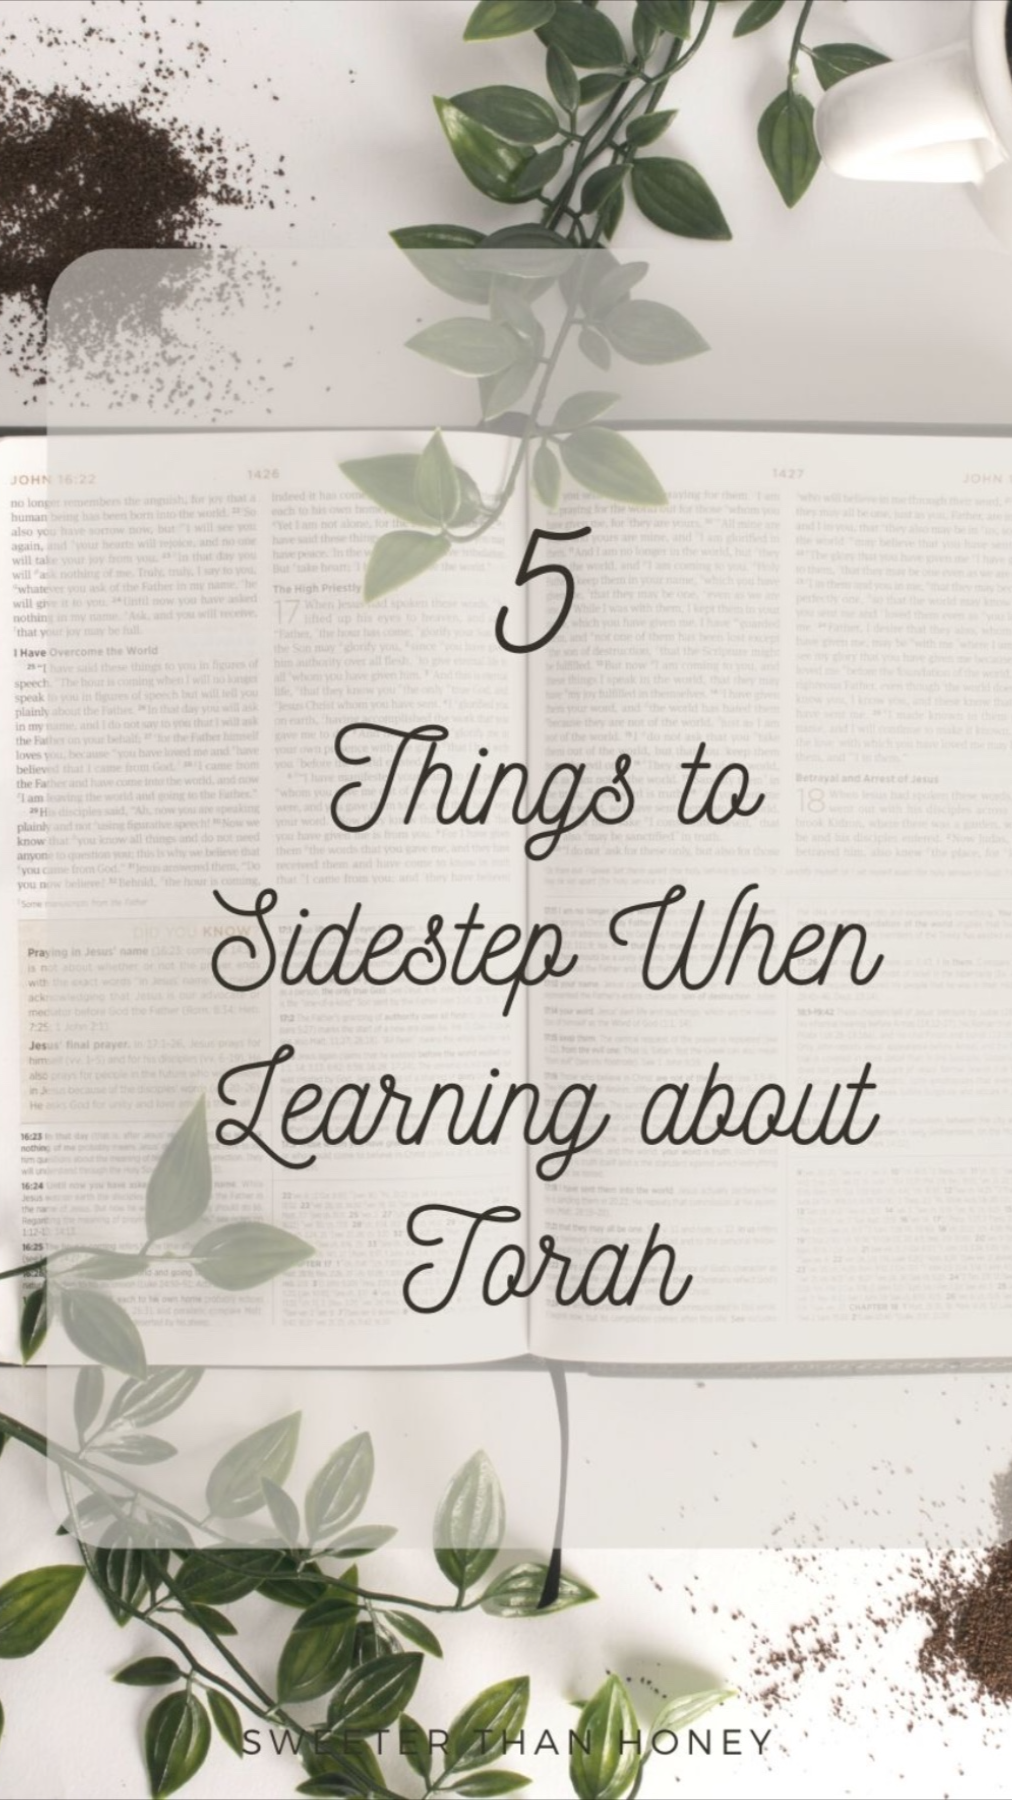 5 things to sidestep when Learning about Torah